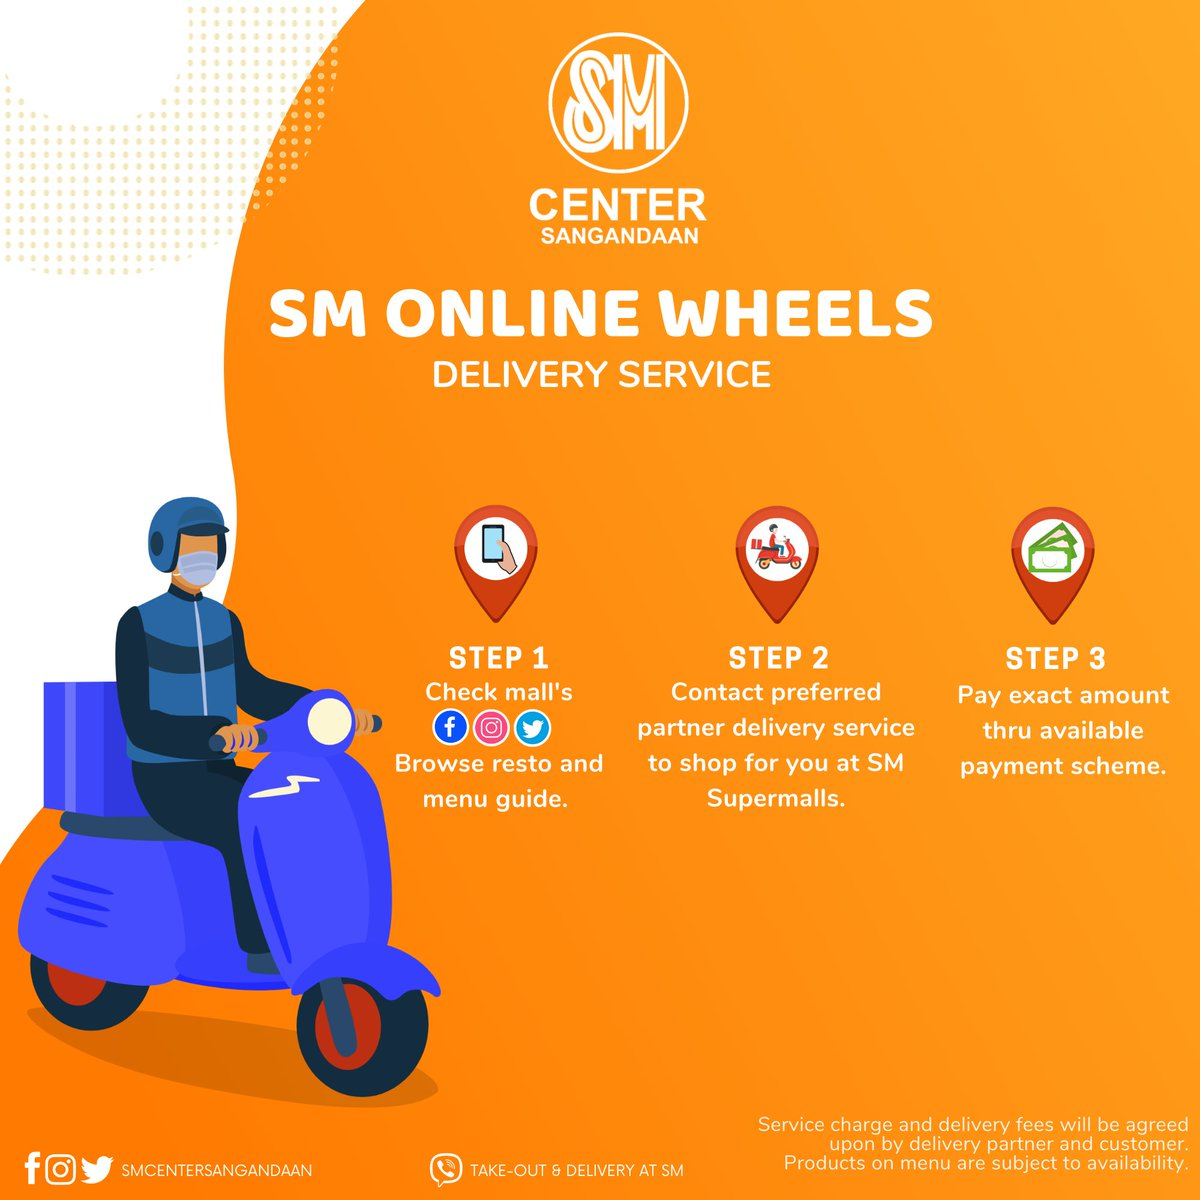 Bring home the joy of dining and shopping right at your doorstep. Check out SM Online Wheels' available delivery service partners around SM Center Sangandaan! Click link for:  OPEN STORES: https://t.co/WPKkAEGFAy MENU GUIDE: https://t.co/uYb6Swb7bS https://t.co/WI4uS8VM3y